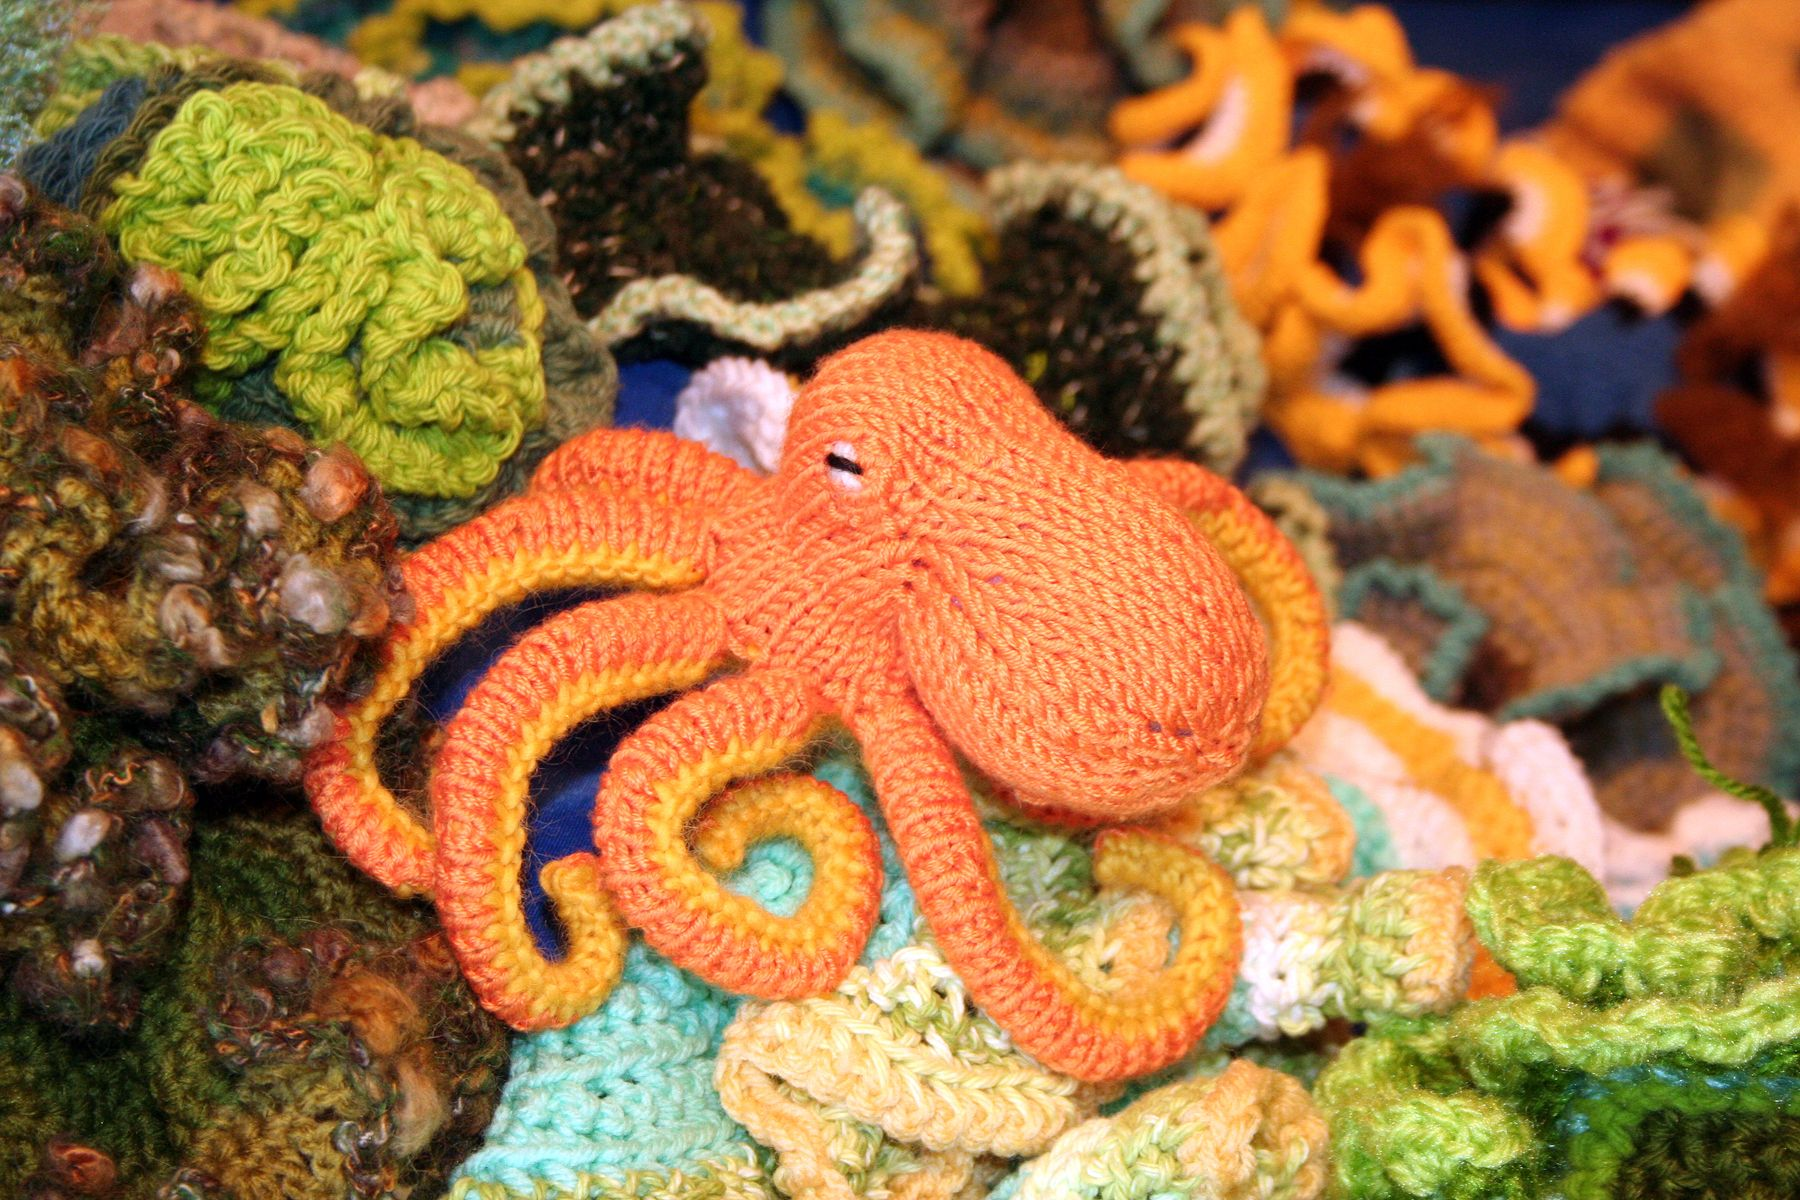 Octopus. The Crochet Coral Reef is a woolly celebration of the ...